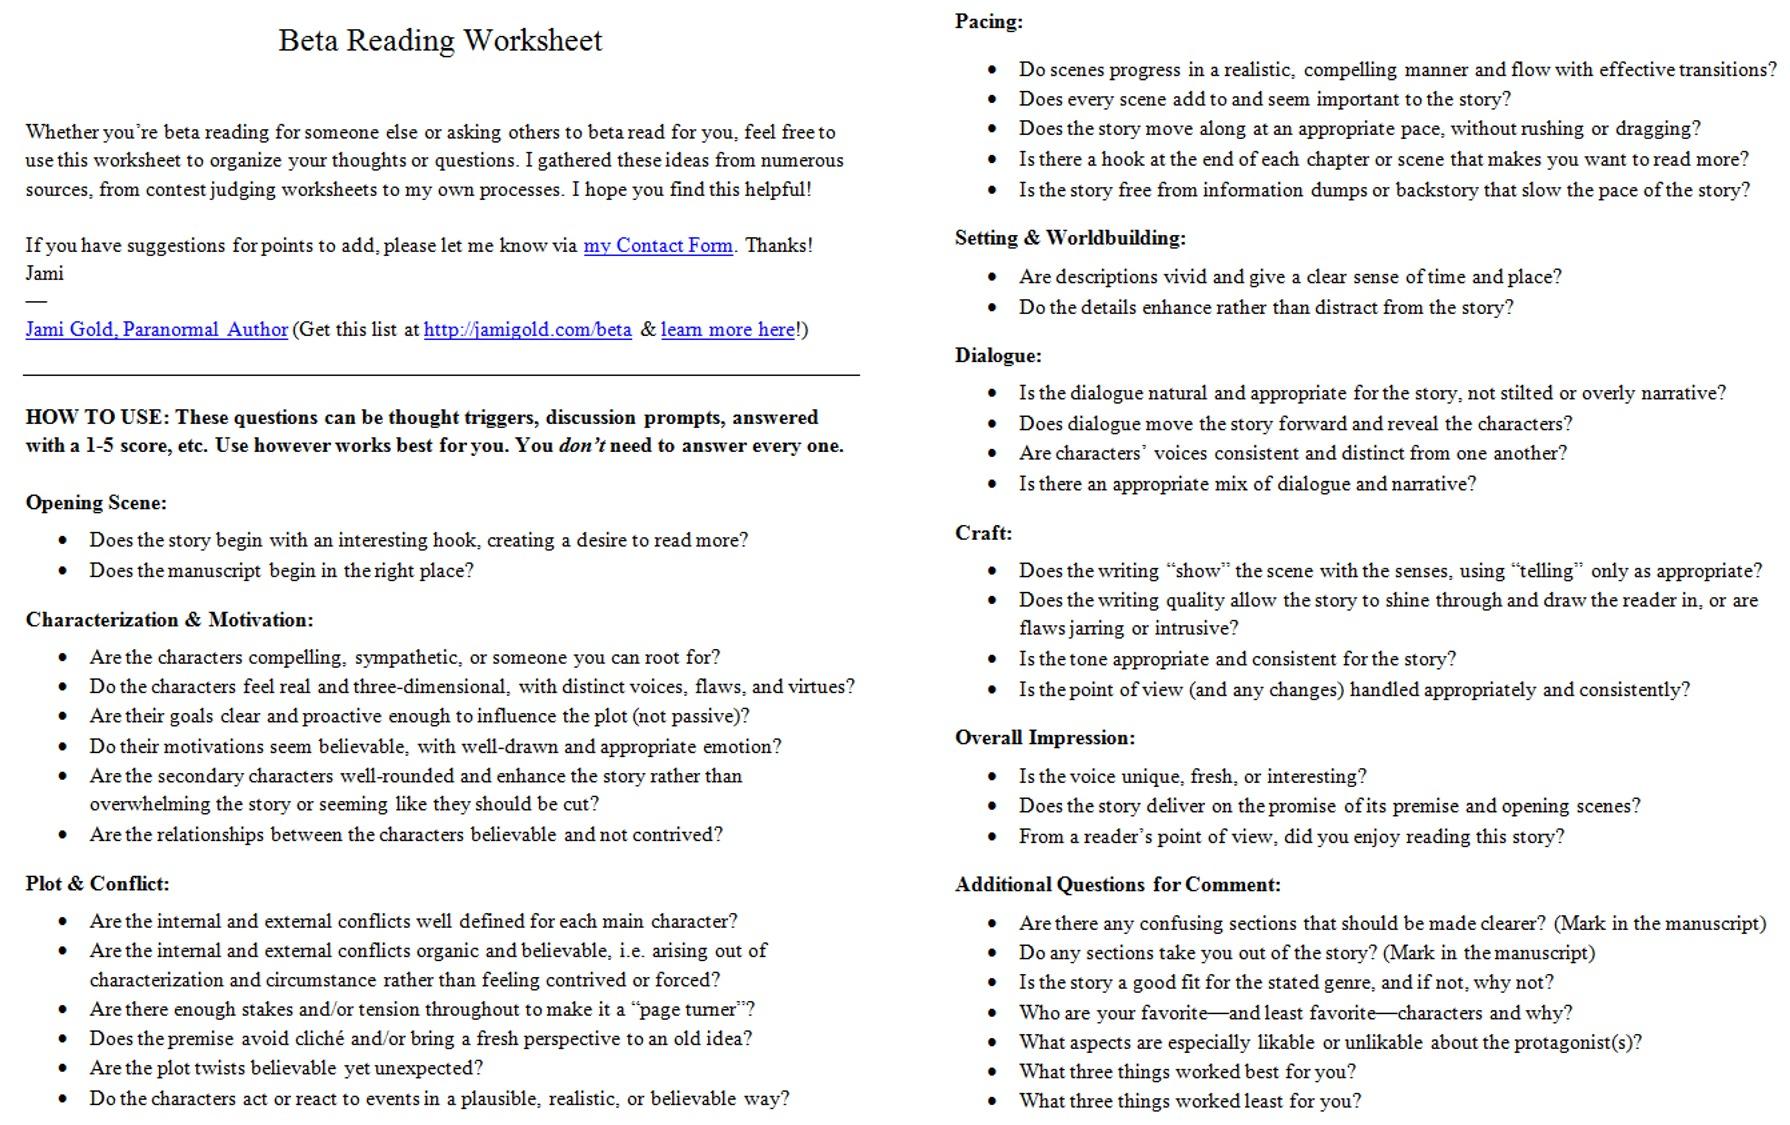 Aldiablosus  Winsome Worksheets For Writers  Jami Gold Paranormal Author With Licious Screen Shot Of The Twopage Beta Reading Worksheet With Endearing Verbs Worksheets For Grade  Also Worksheets On Simple Present Tense In Addition Worksheet On Shapes For Grade  And Attribute Block Worksheets As Well As Music Instruments Worksheets Additionally Living Non Living Worksheet From Jamigoldcom With Aldiablosus  Licious Worksheets For Writers  Jami Gold Paranormal Author With Endearing Screen Shot Of The Twopage Beta Reading Worksheet And Winsome Verbs Worksheets For Grade  Also Worksheets On Simple Present Tense In Addition Worksheet On Shapes For Grade  From Jamigoldcom